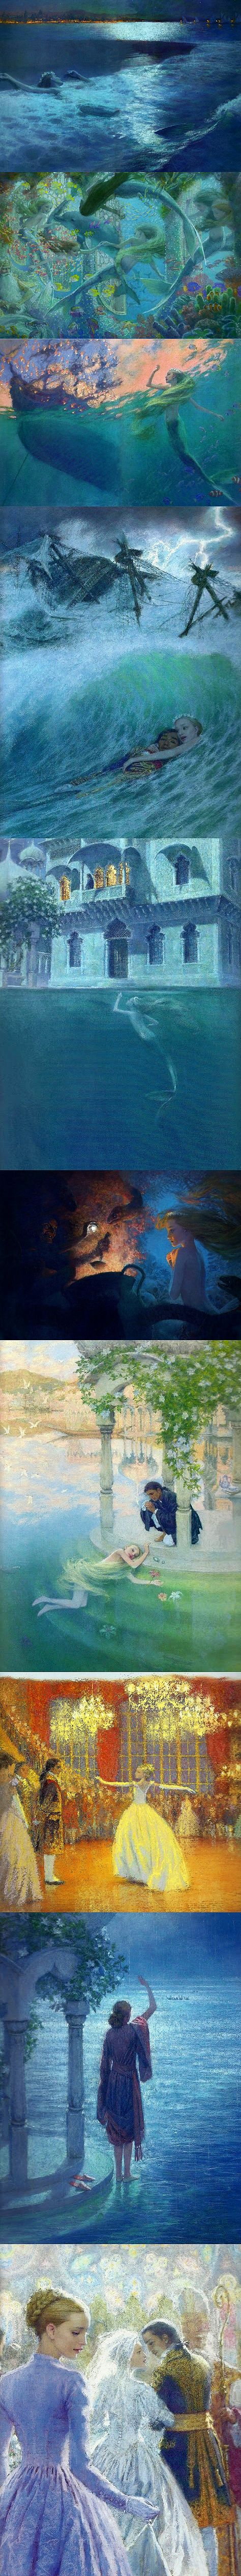 "The Little Mermaid | La douleur exquise – French: literally ""exquisite pain"", the heart-wrenching pain of wanting someone you can never have. Art by Christian Birmingham"